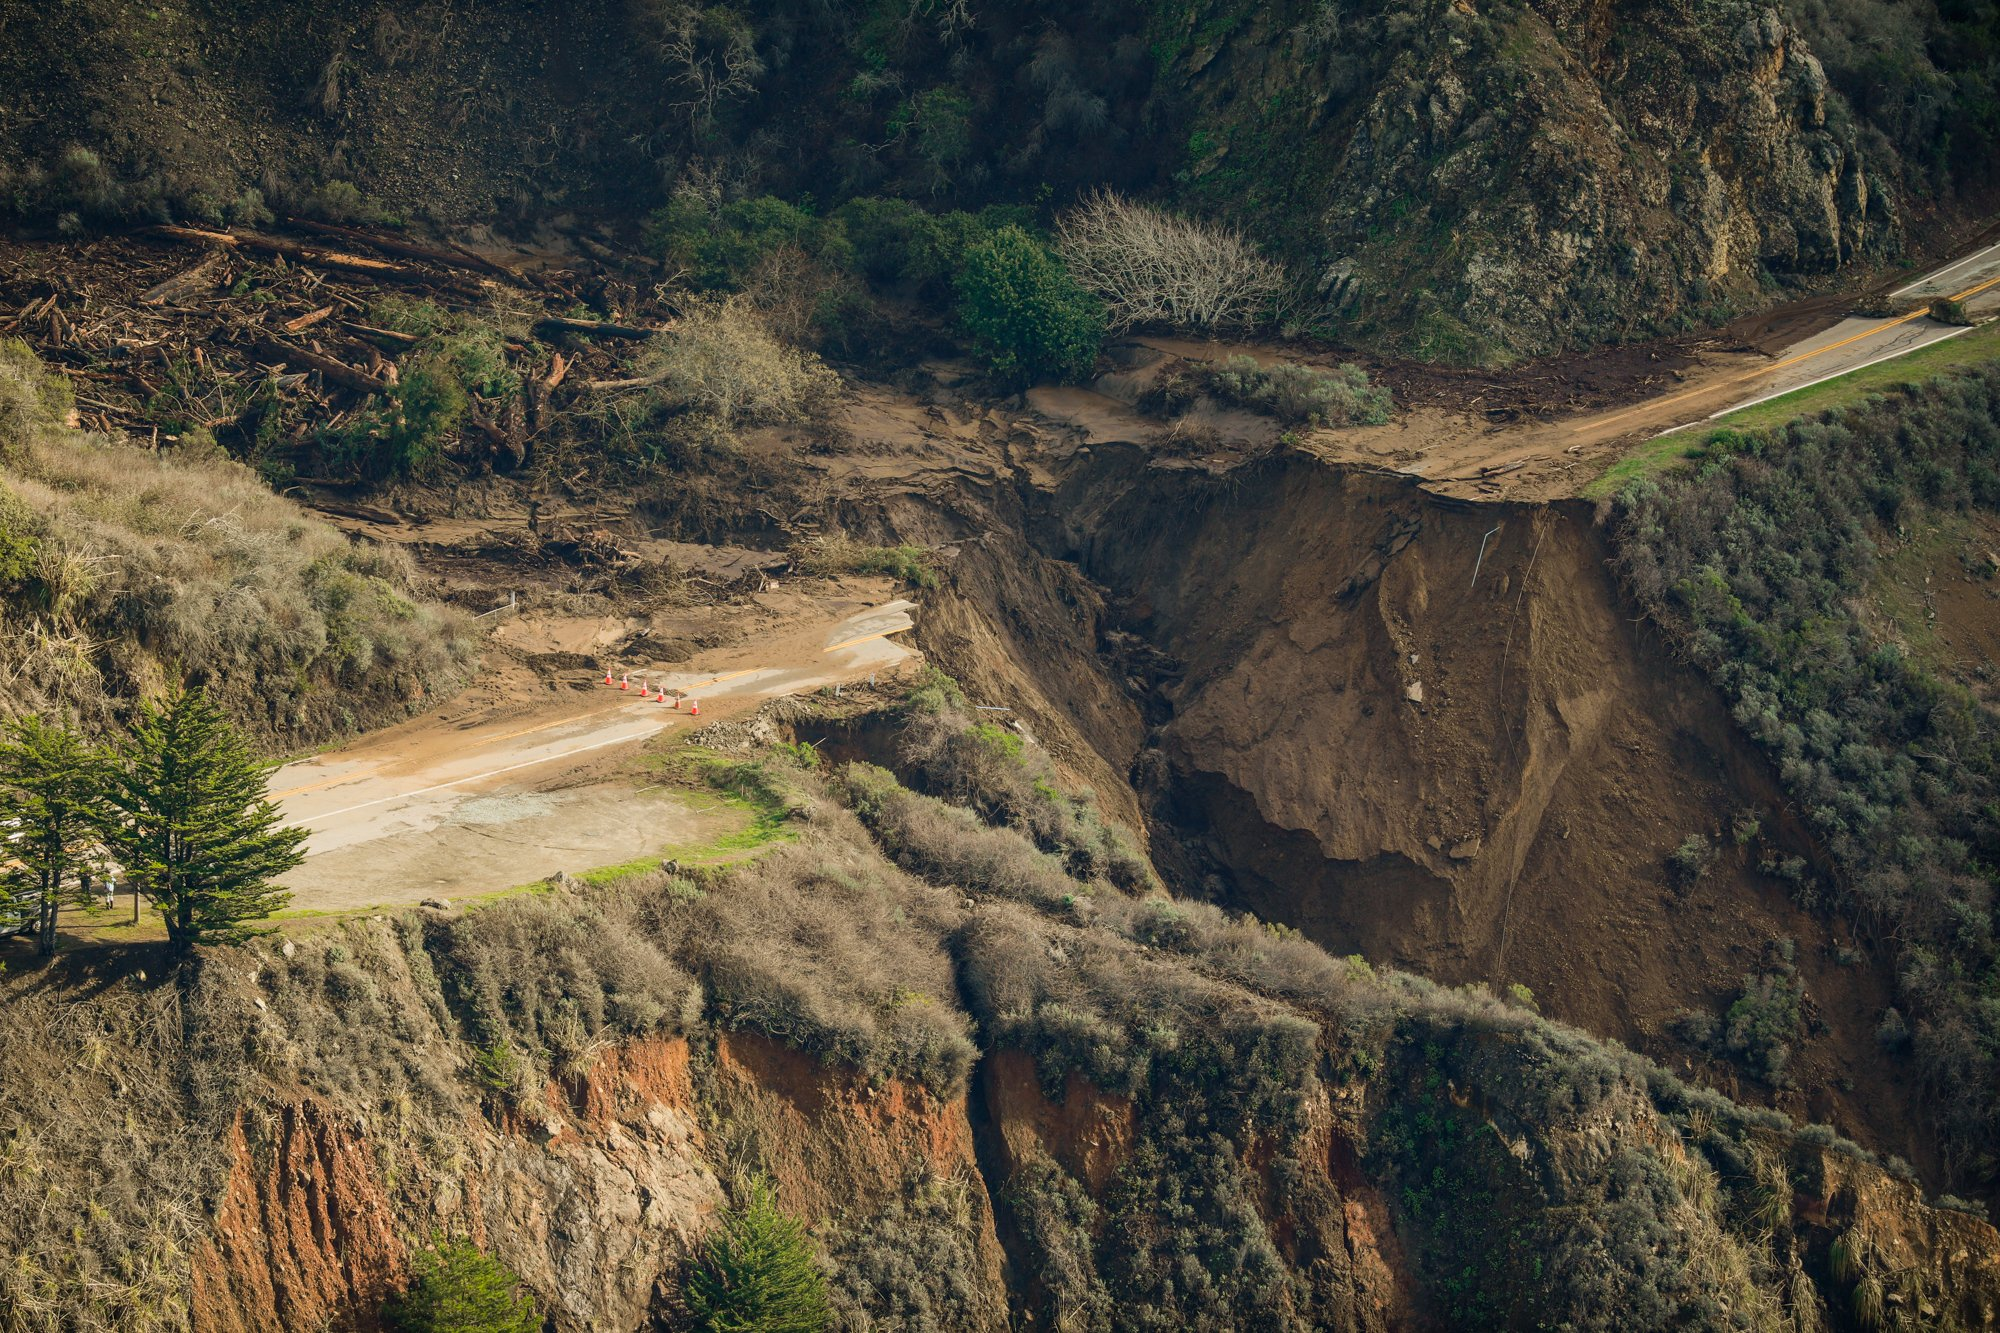 Highway 1 destroyed as a result of California floods and mudslides, January, 2021. | Photo: Getty Images.